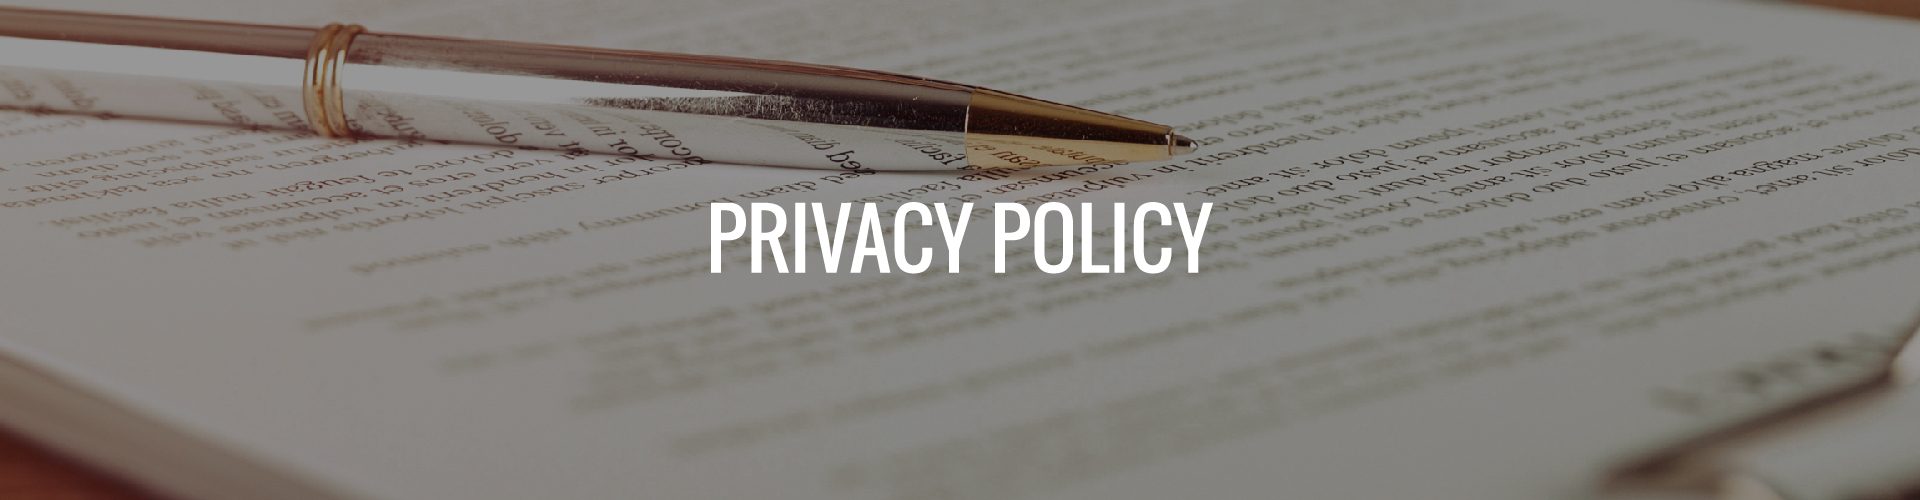 privacy_policy_nhancedcbd